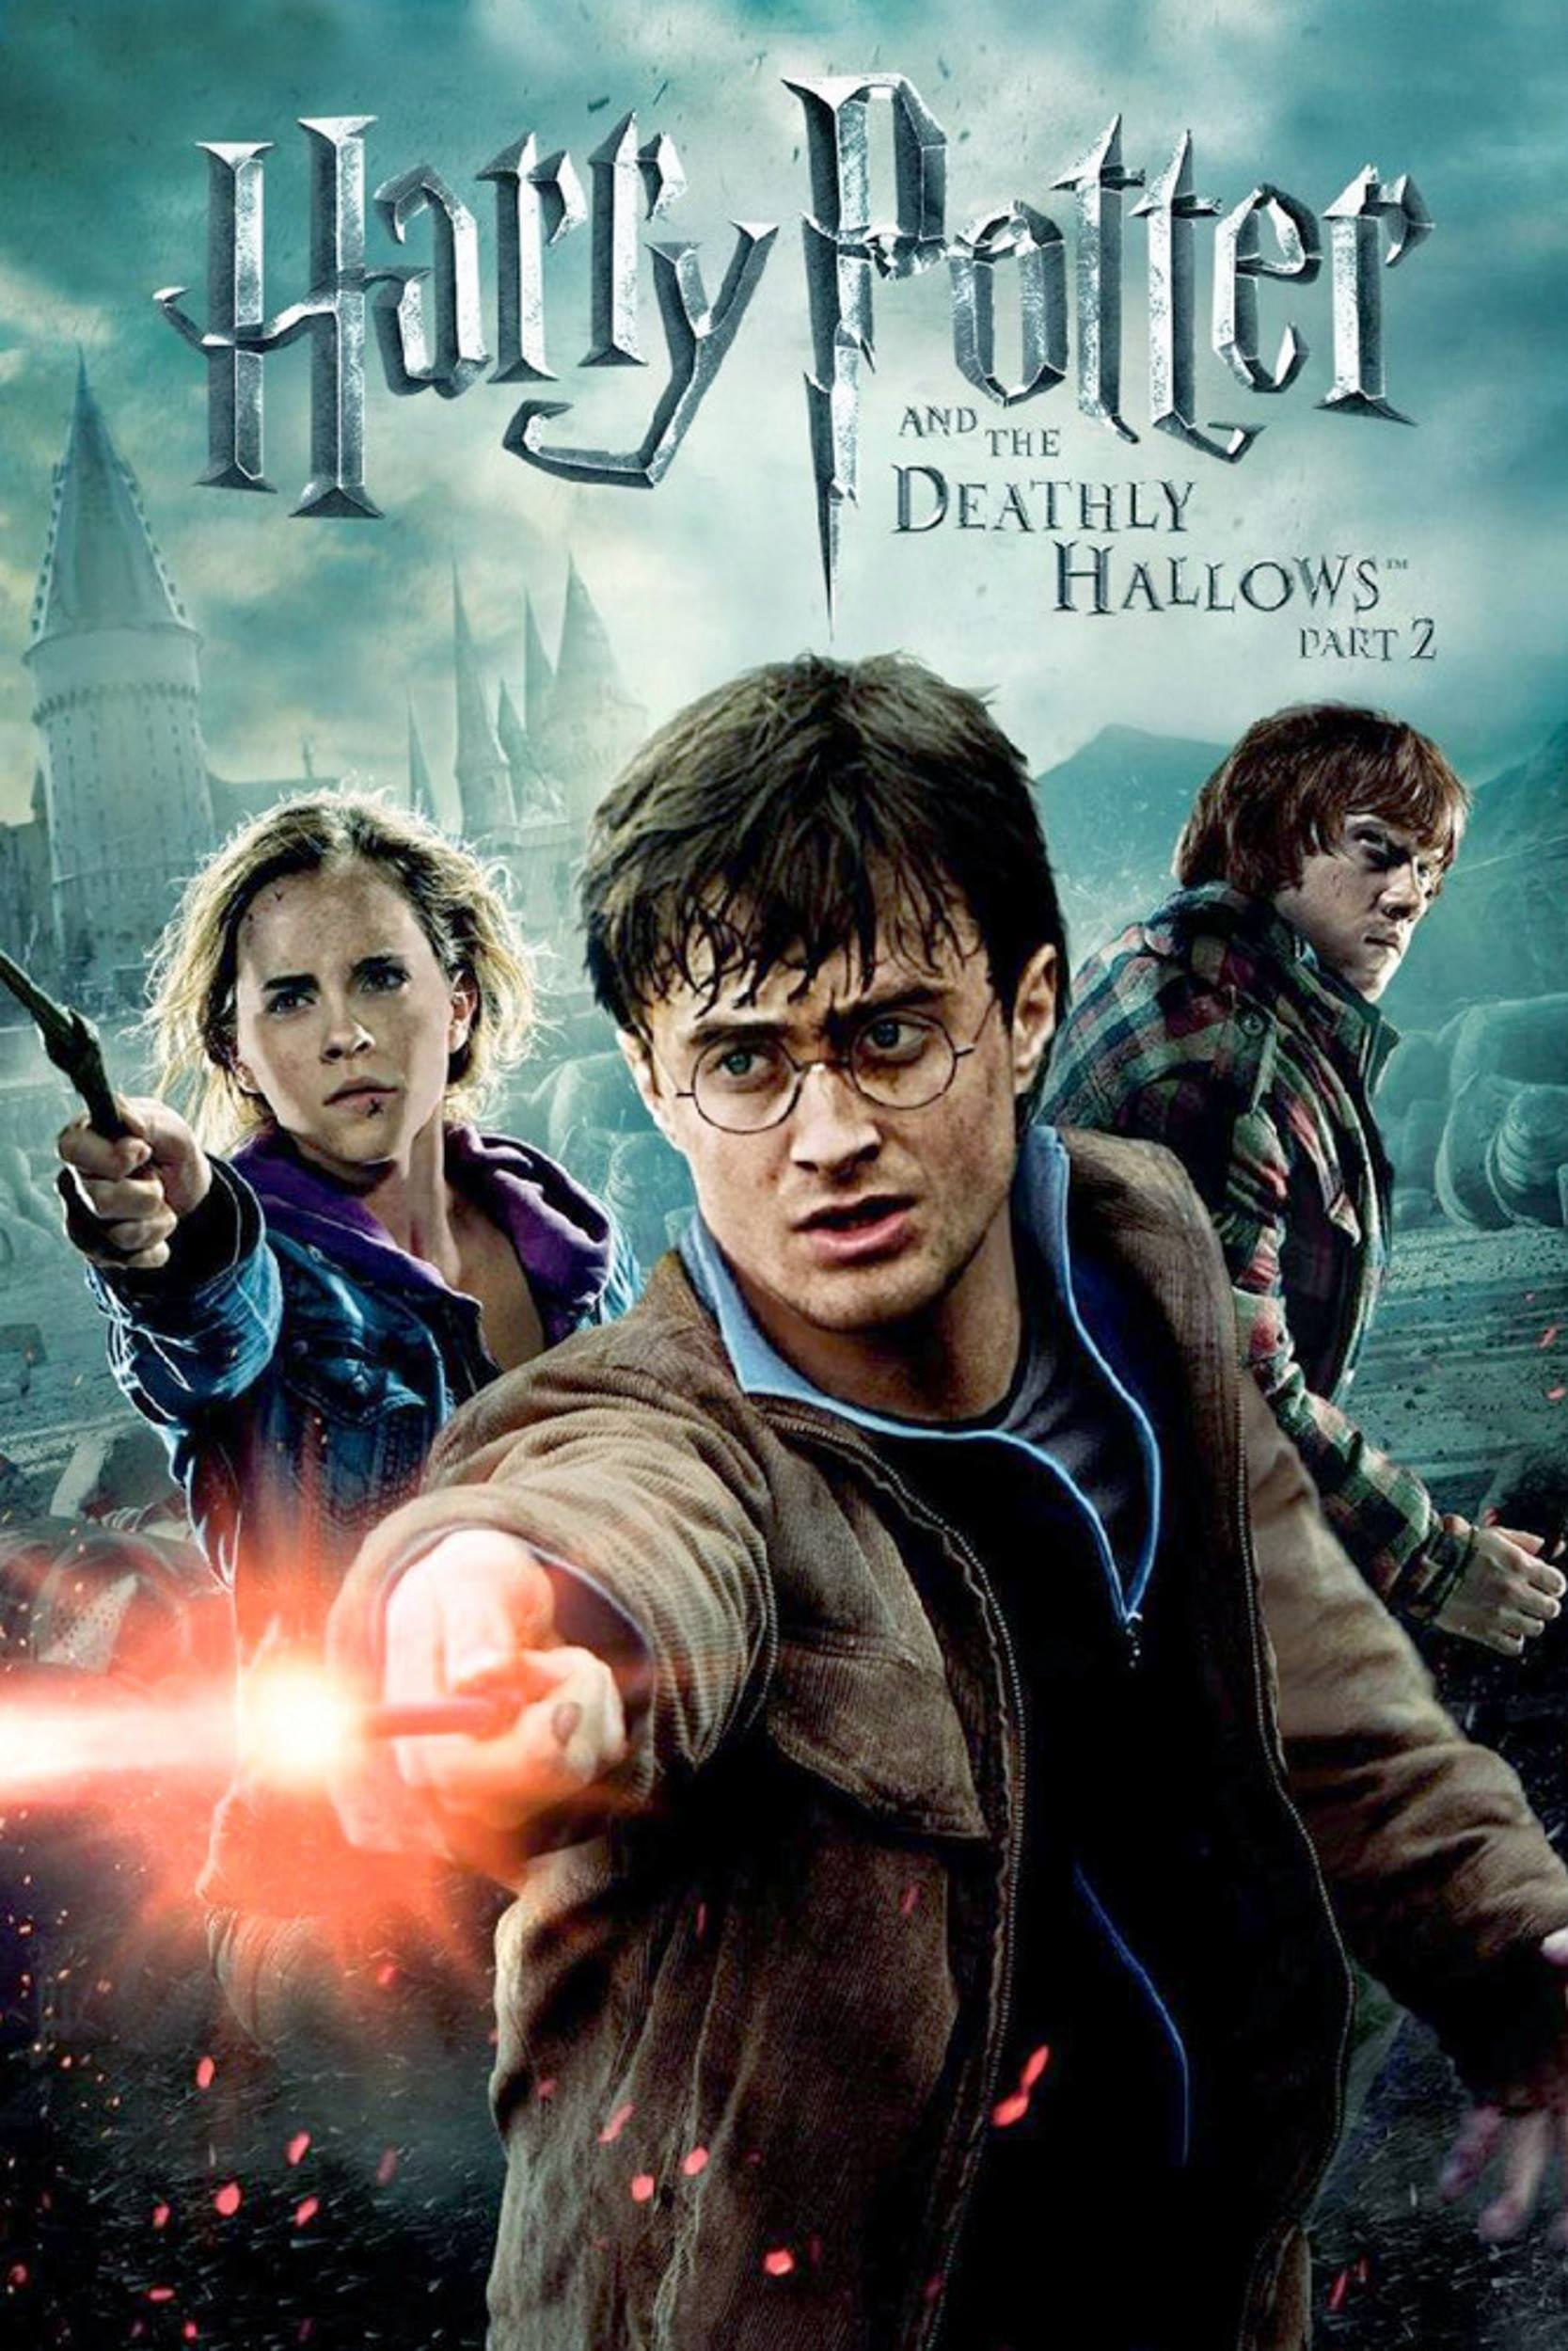 Arena Multimedia - HarryPotter - 5